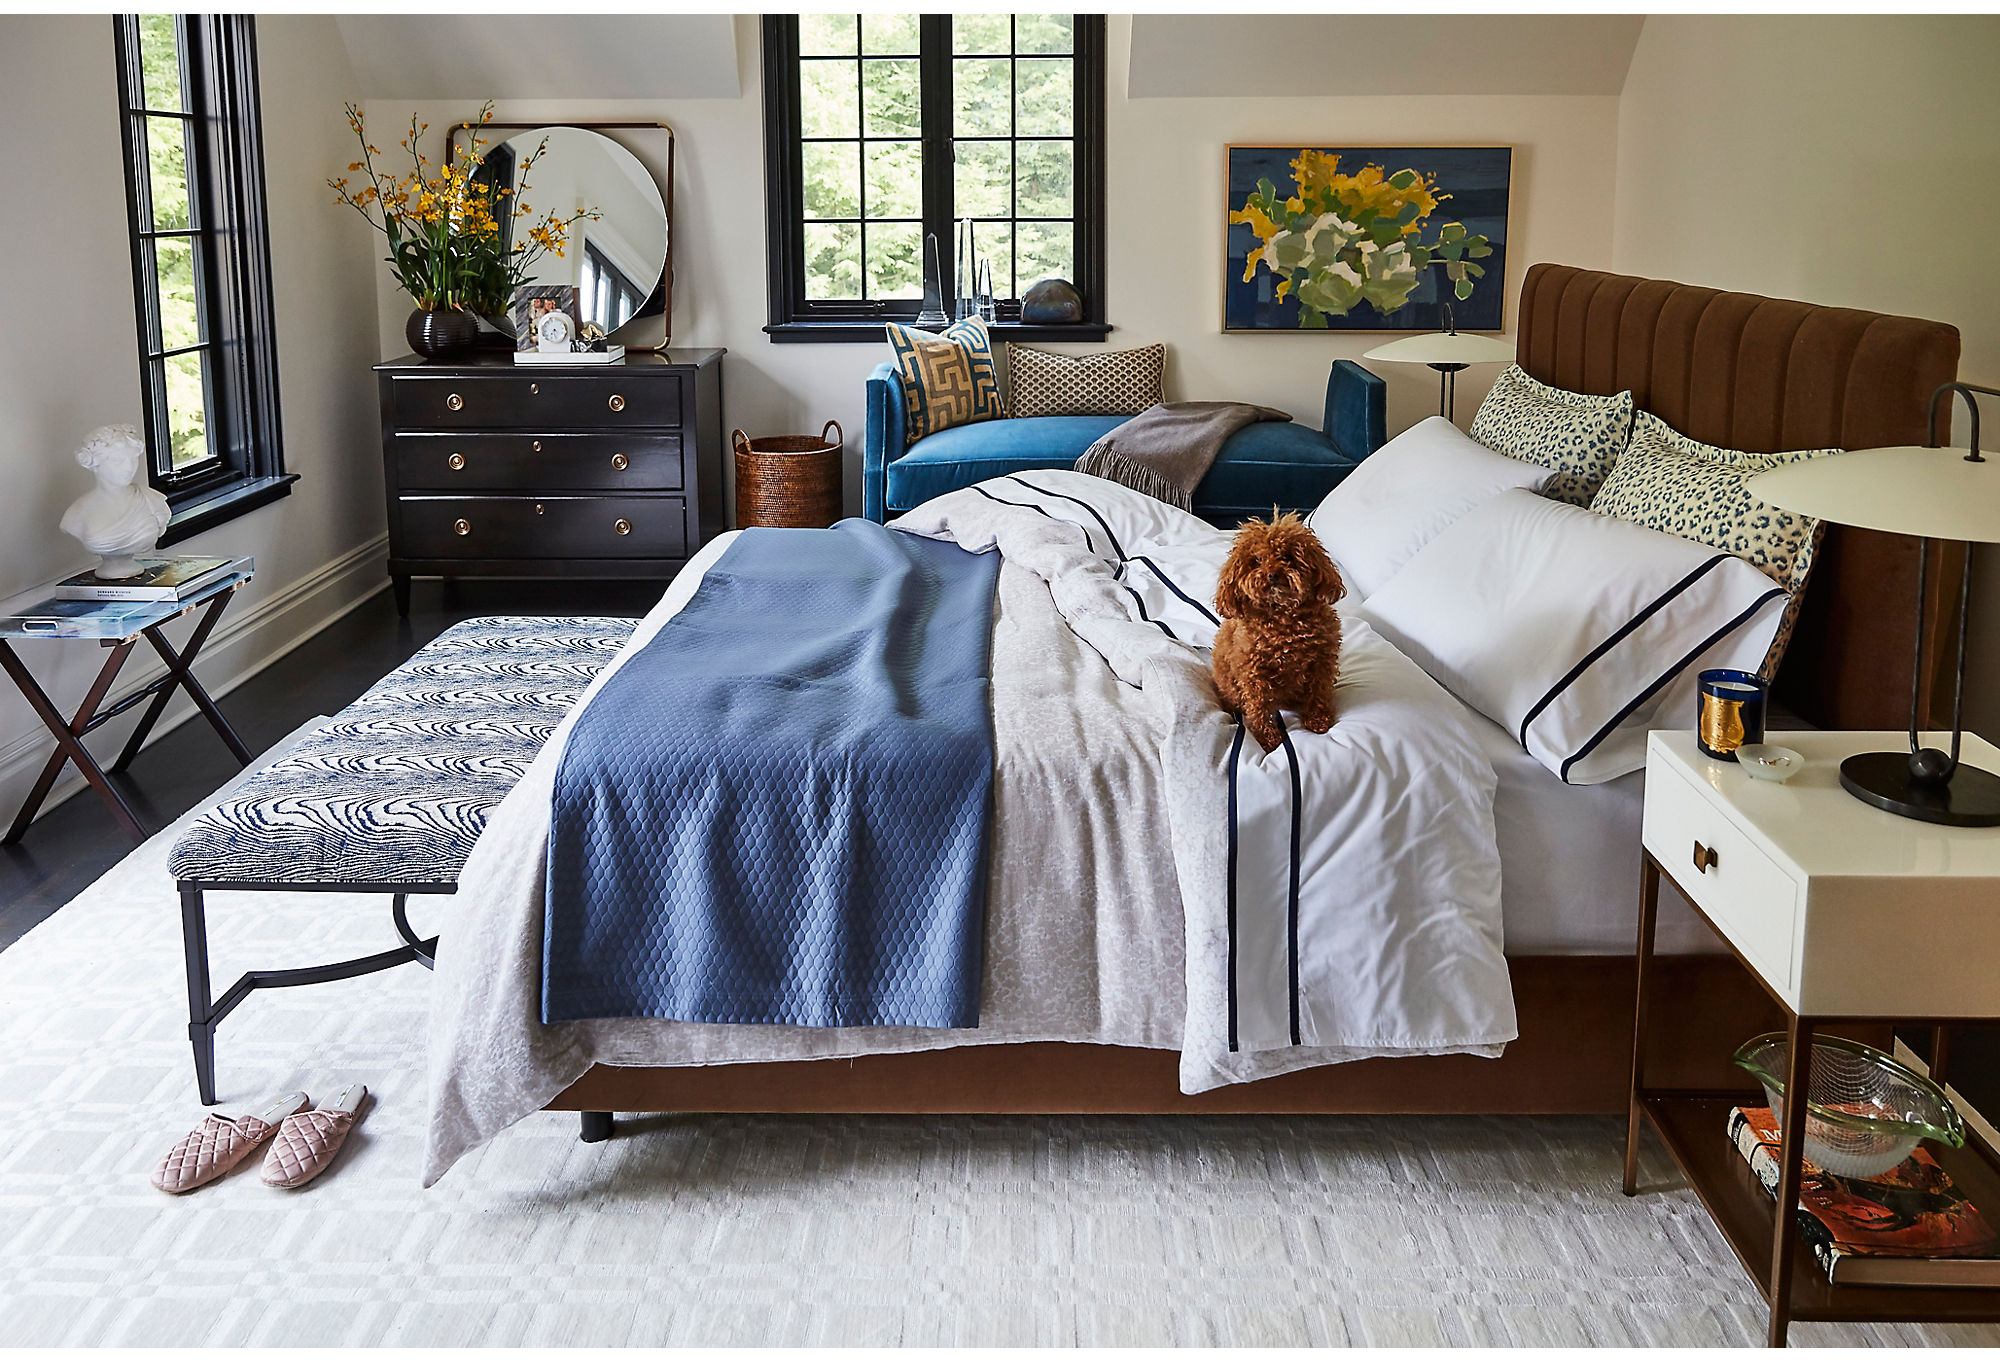 Blue-and-white bedding is a good choice year-round. Furniture in deeper tones, such as our exclusive Dumont Bench in Harbor Blue (against the wall) and the Delmar Channel Bed in Sand Velvet, bring an air of fall into the room.